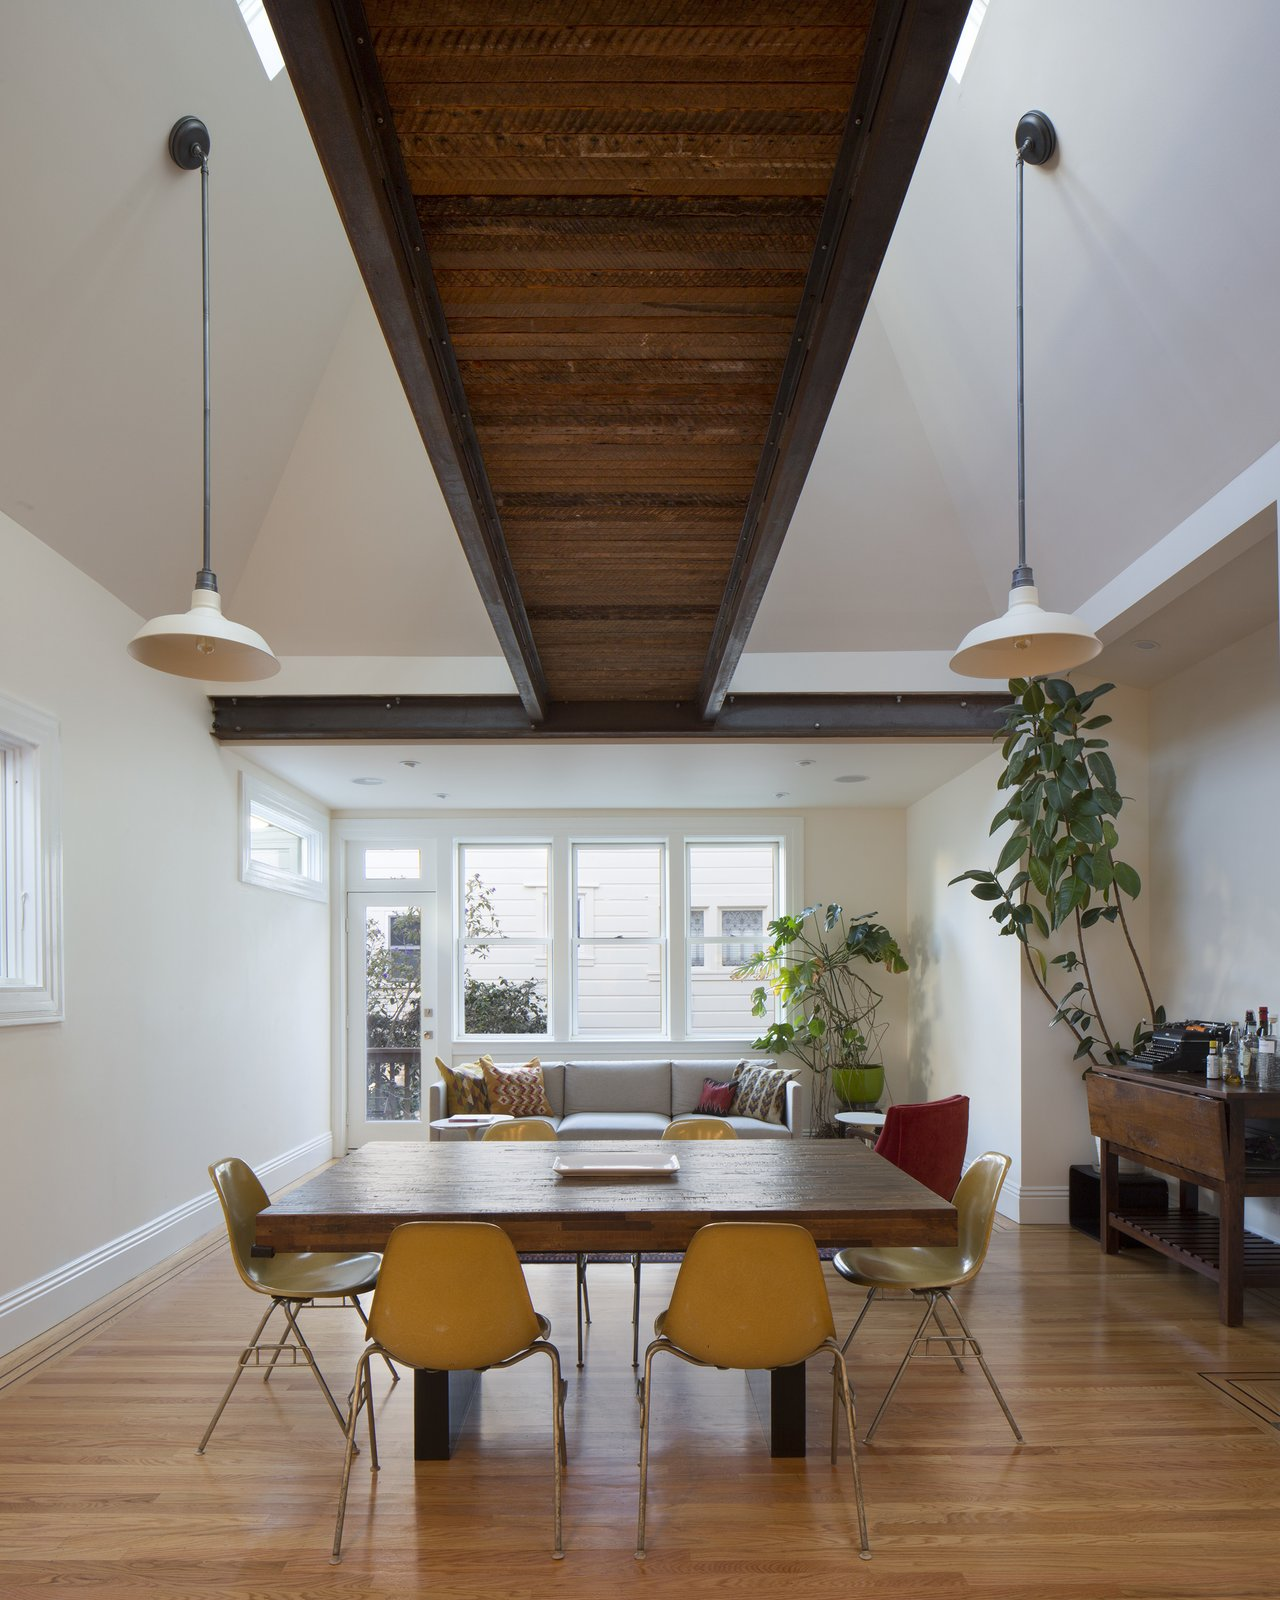 Living Room, Pendant Lighting, Sofa, Recessed Lighting, and Light Hardwood Floor view toward living area at rear of room  Bridge House by McElroy Architecture